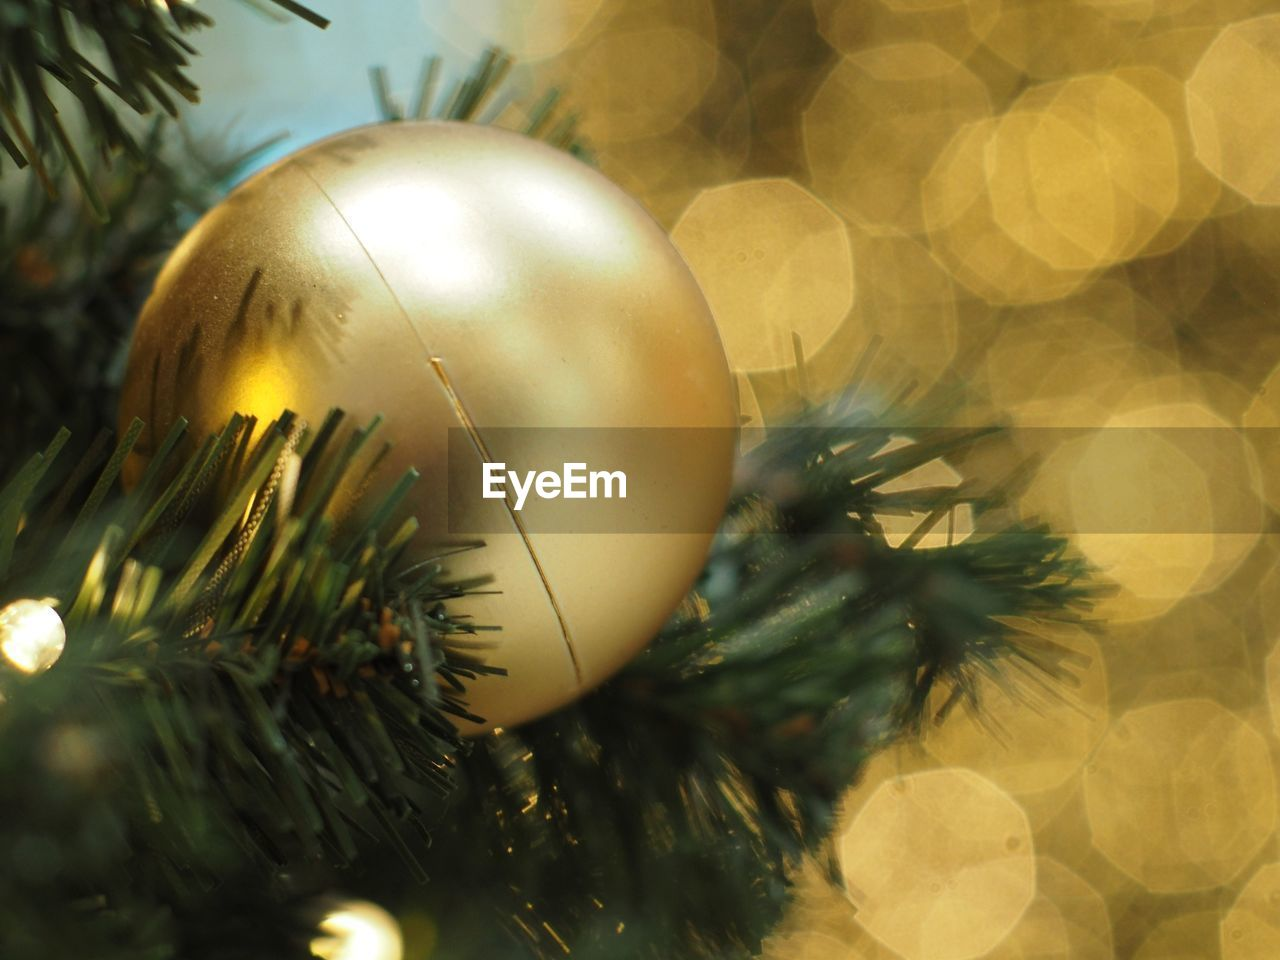 christmas decoration, christmas, decoration, holiday, christmas ornament, celebration, tree, christmas tree, close-up, sphere, gold colored, shiny, no people, selective focus, celebration event, holiday - event, focus on foreground, event, ball, silver colored